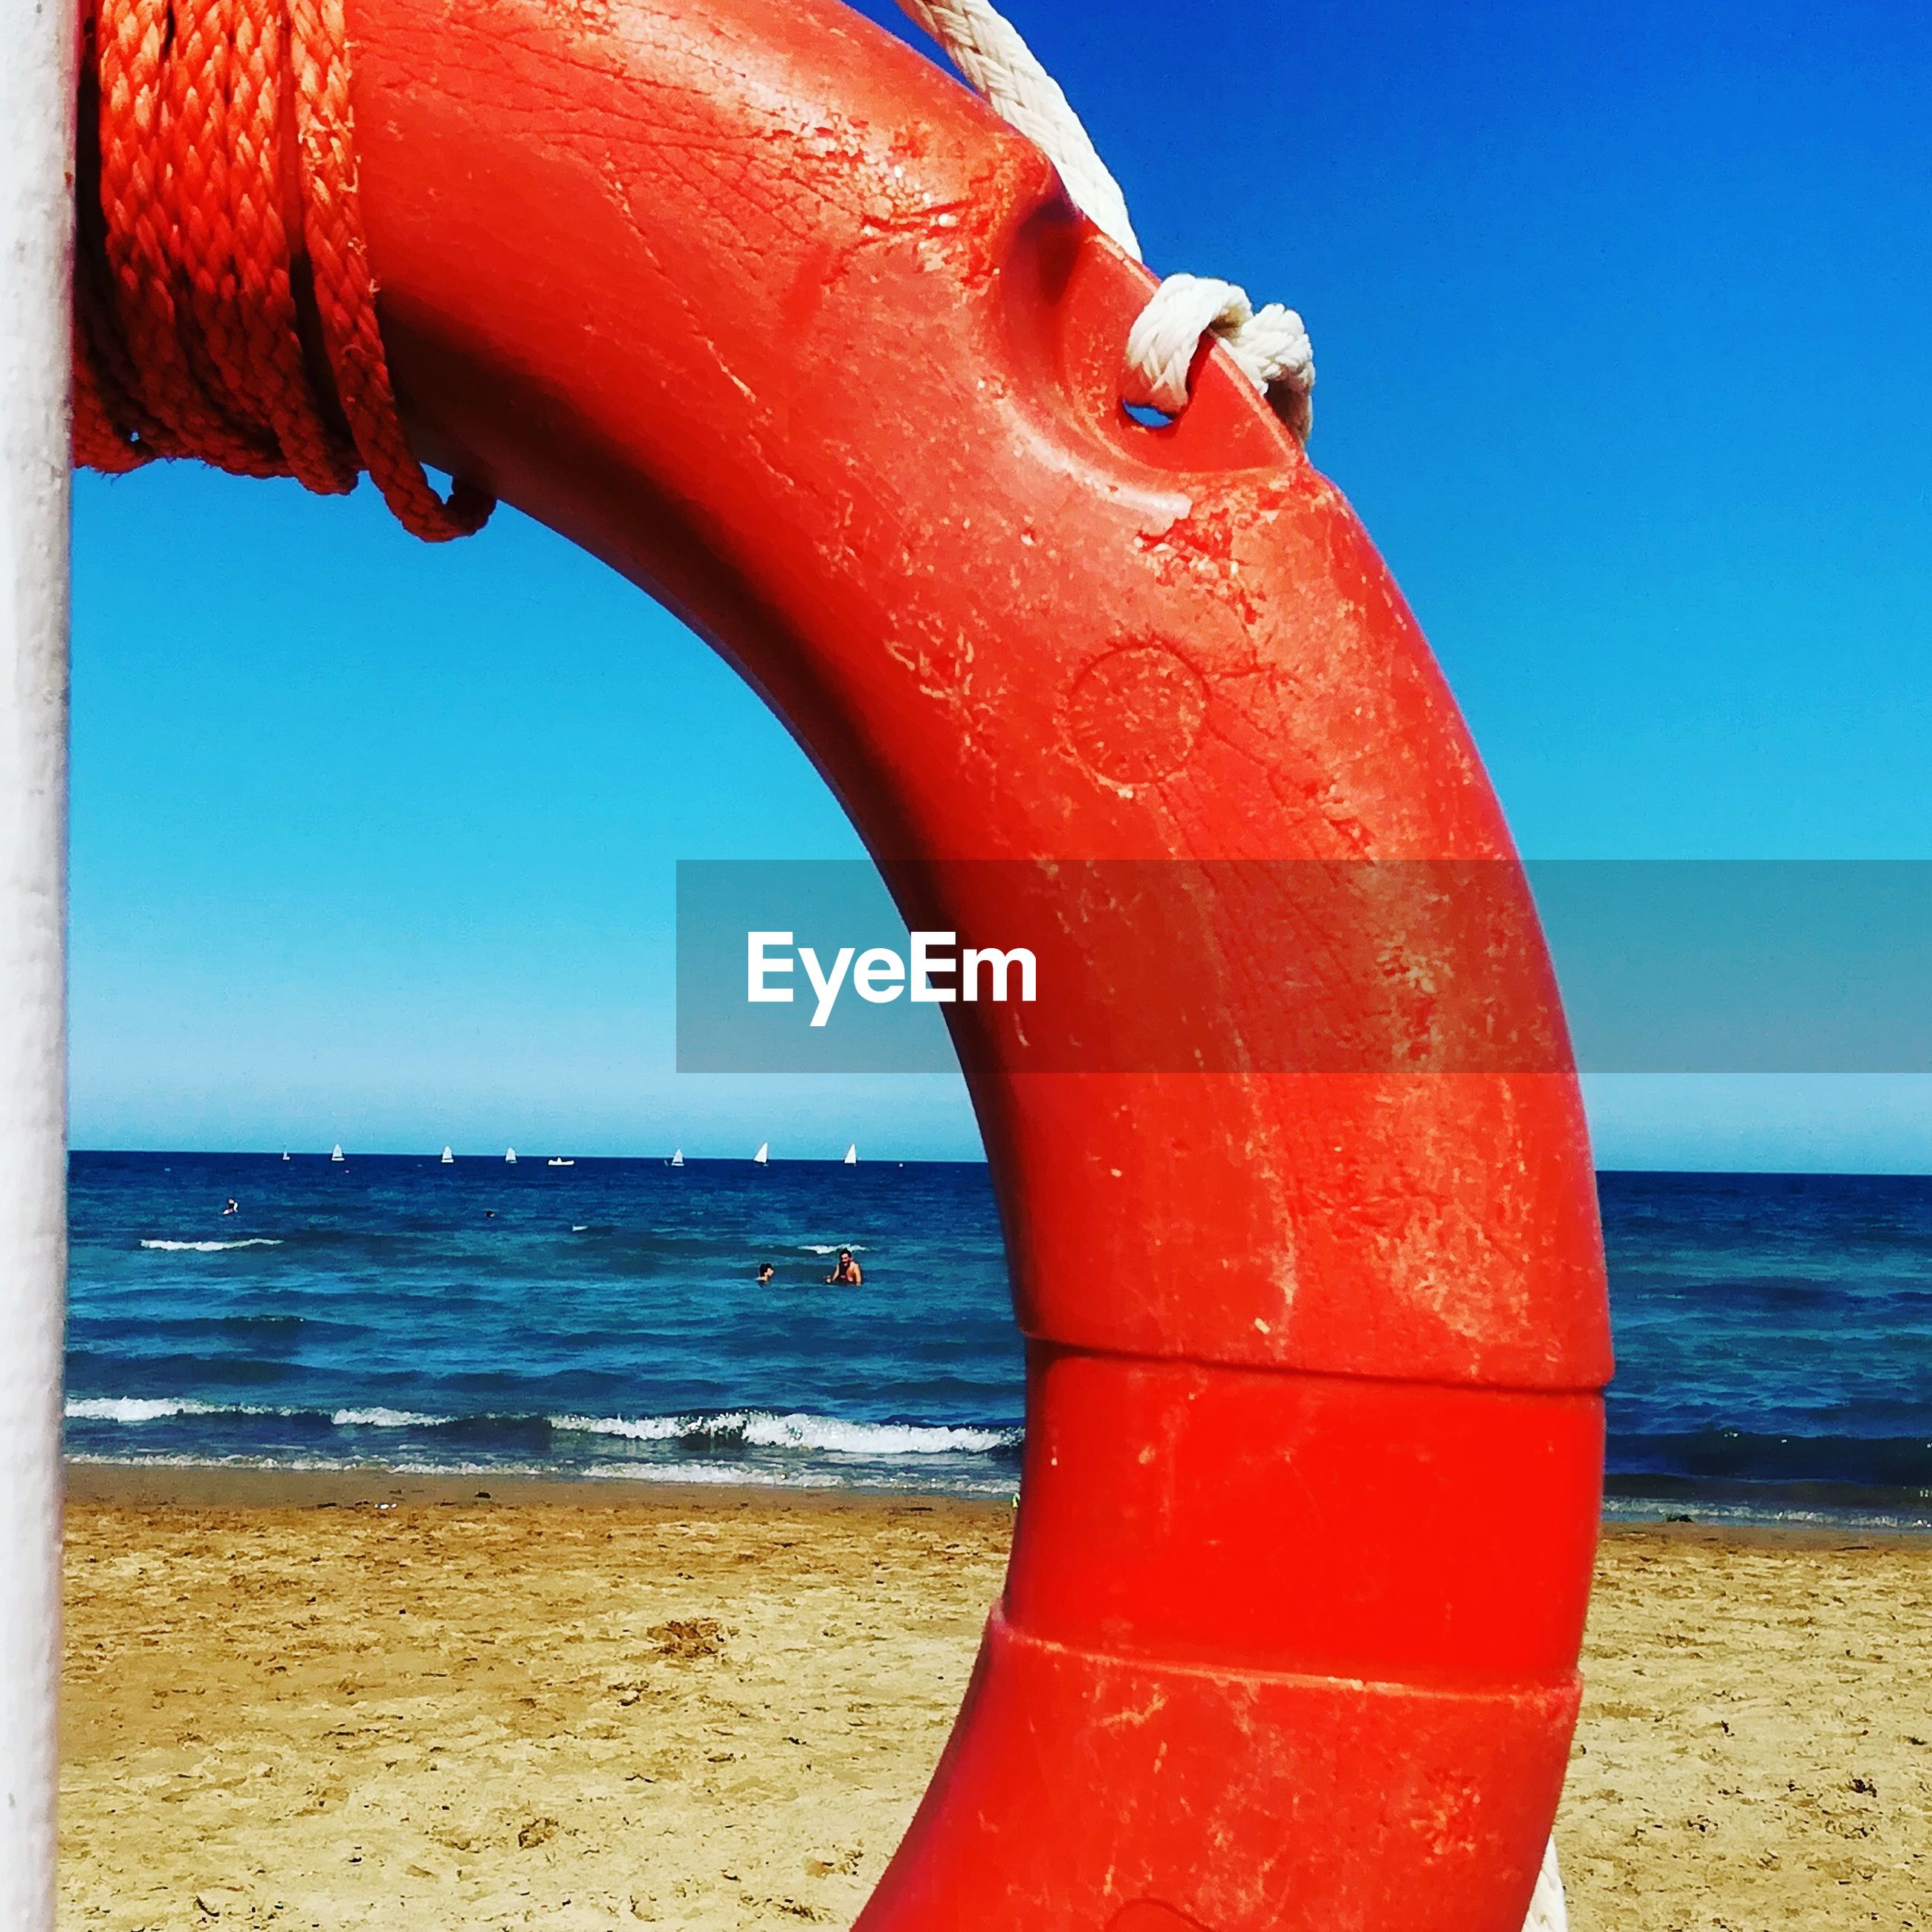 sea, water, horizon over water, red, sky, blue, beauty in nature, nature, day, tranquil scene, outdoors, sunlight, clear sky, no people, tranquility, scenics, nautical vessel, close-up